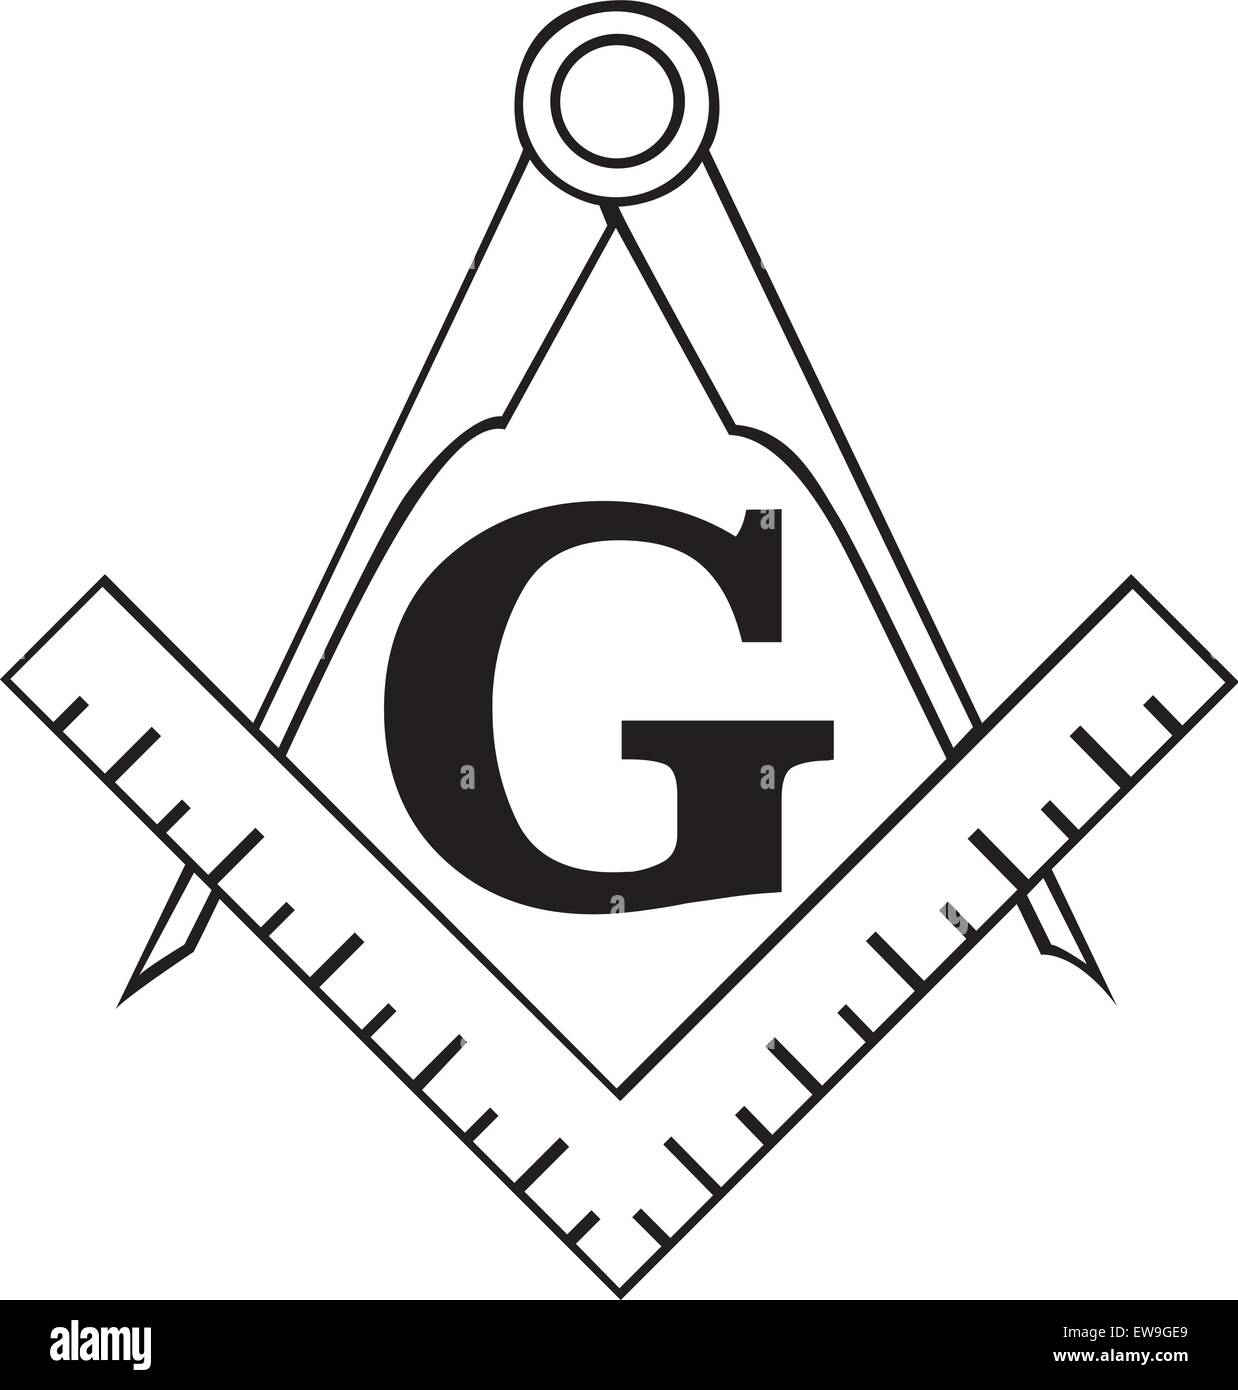 Freemasons Symbol Stock Photos Freemasons Symbol Stock Images Alamy